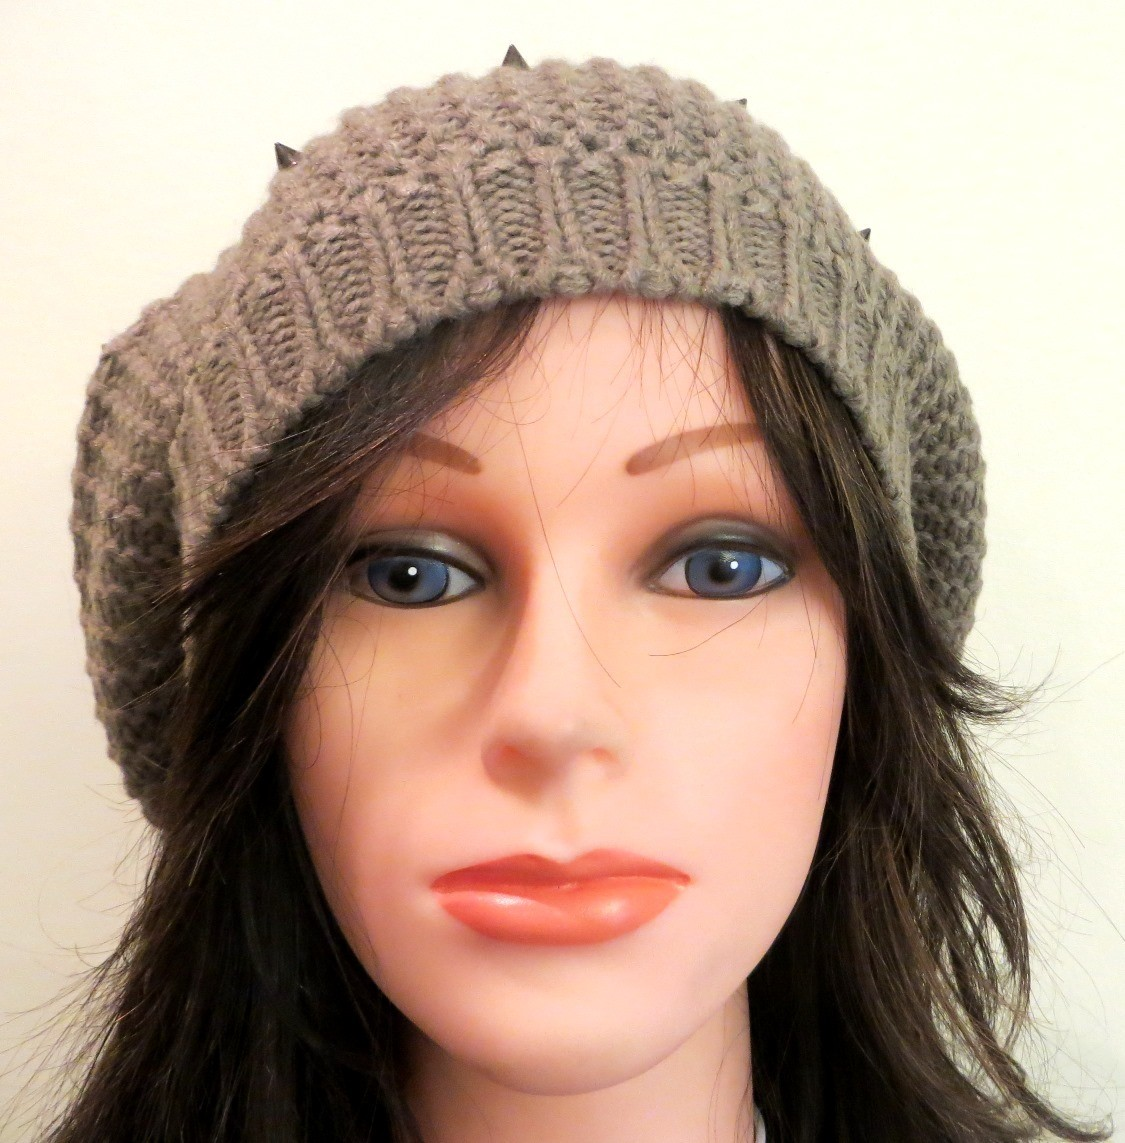 Beige beret with spikes